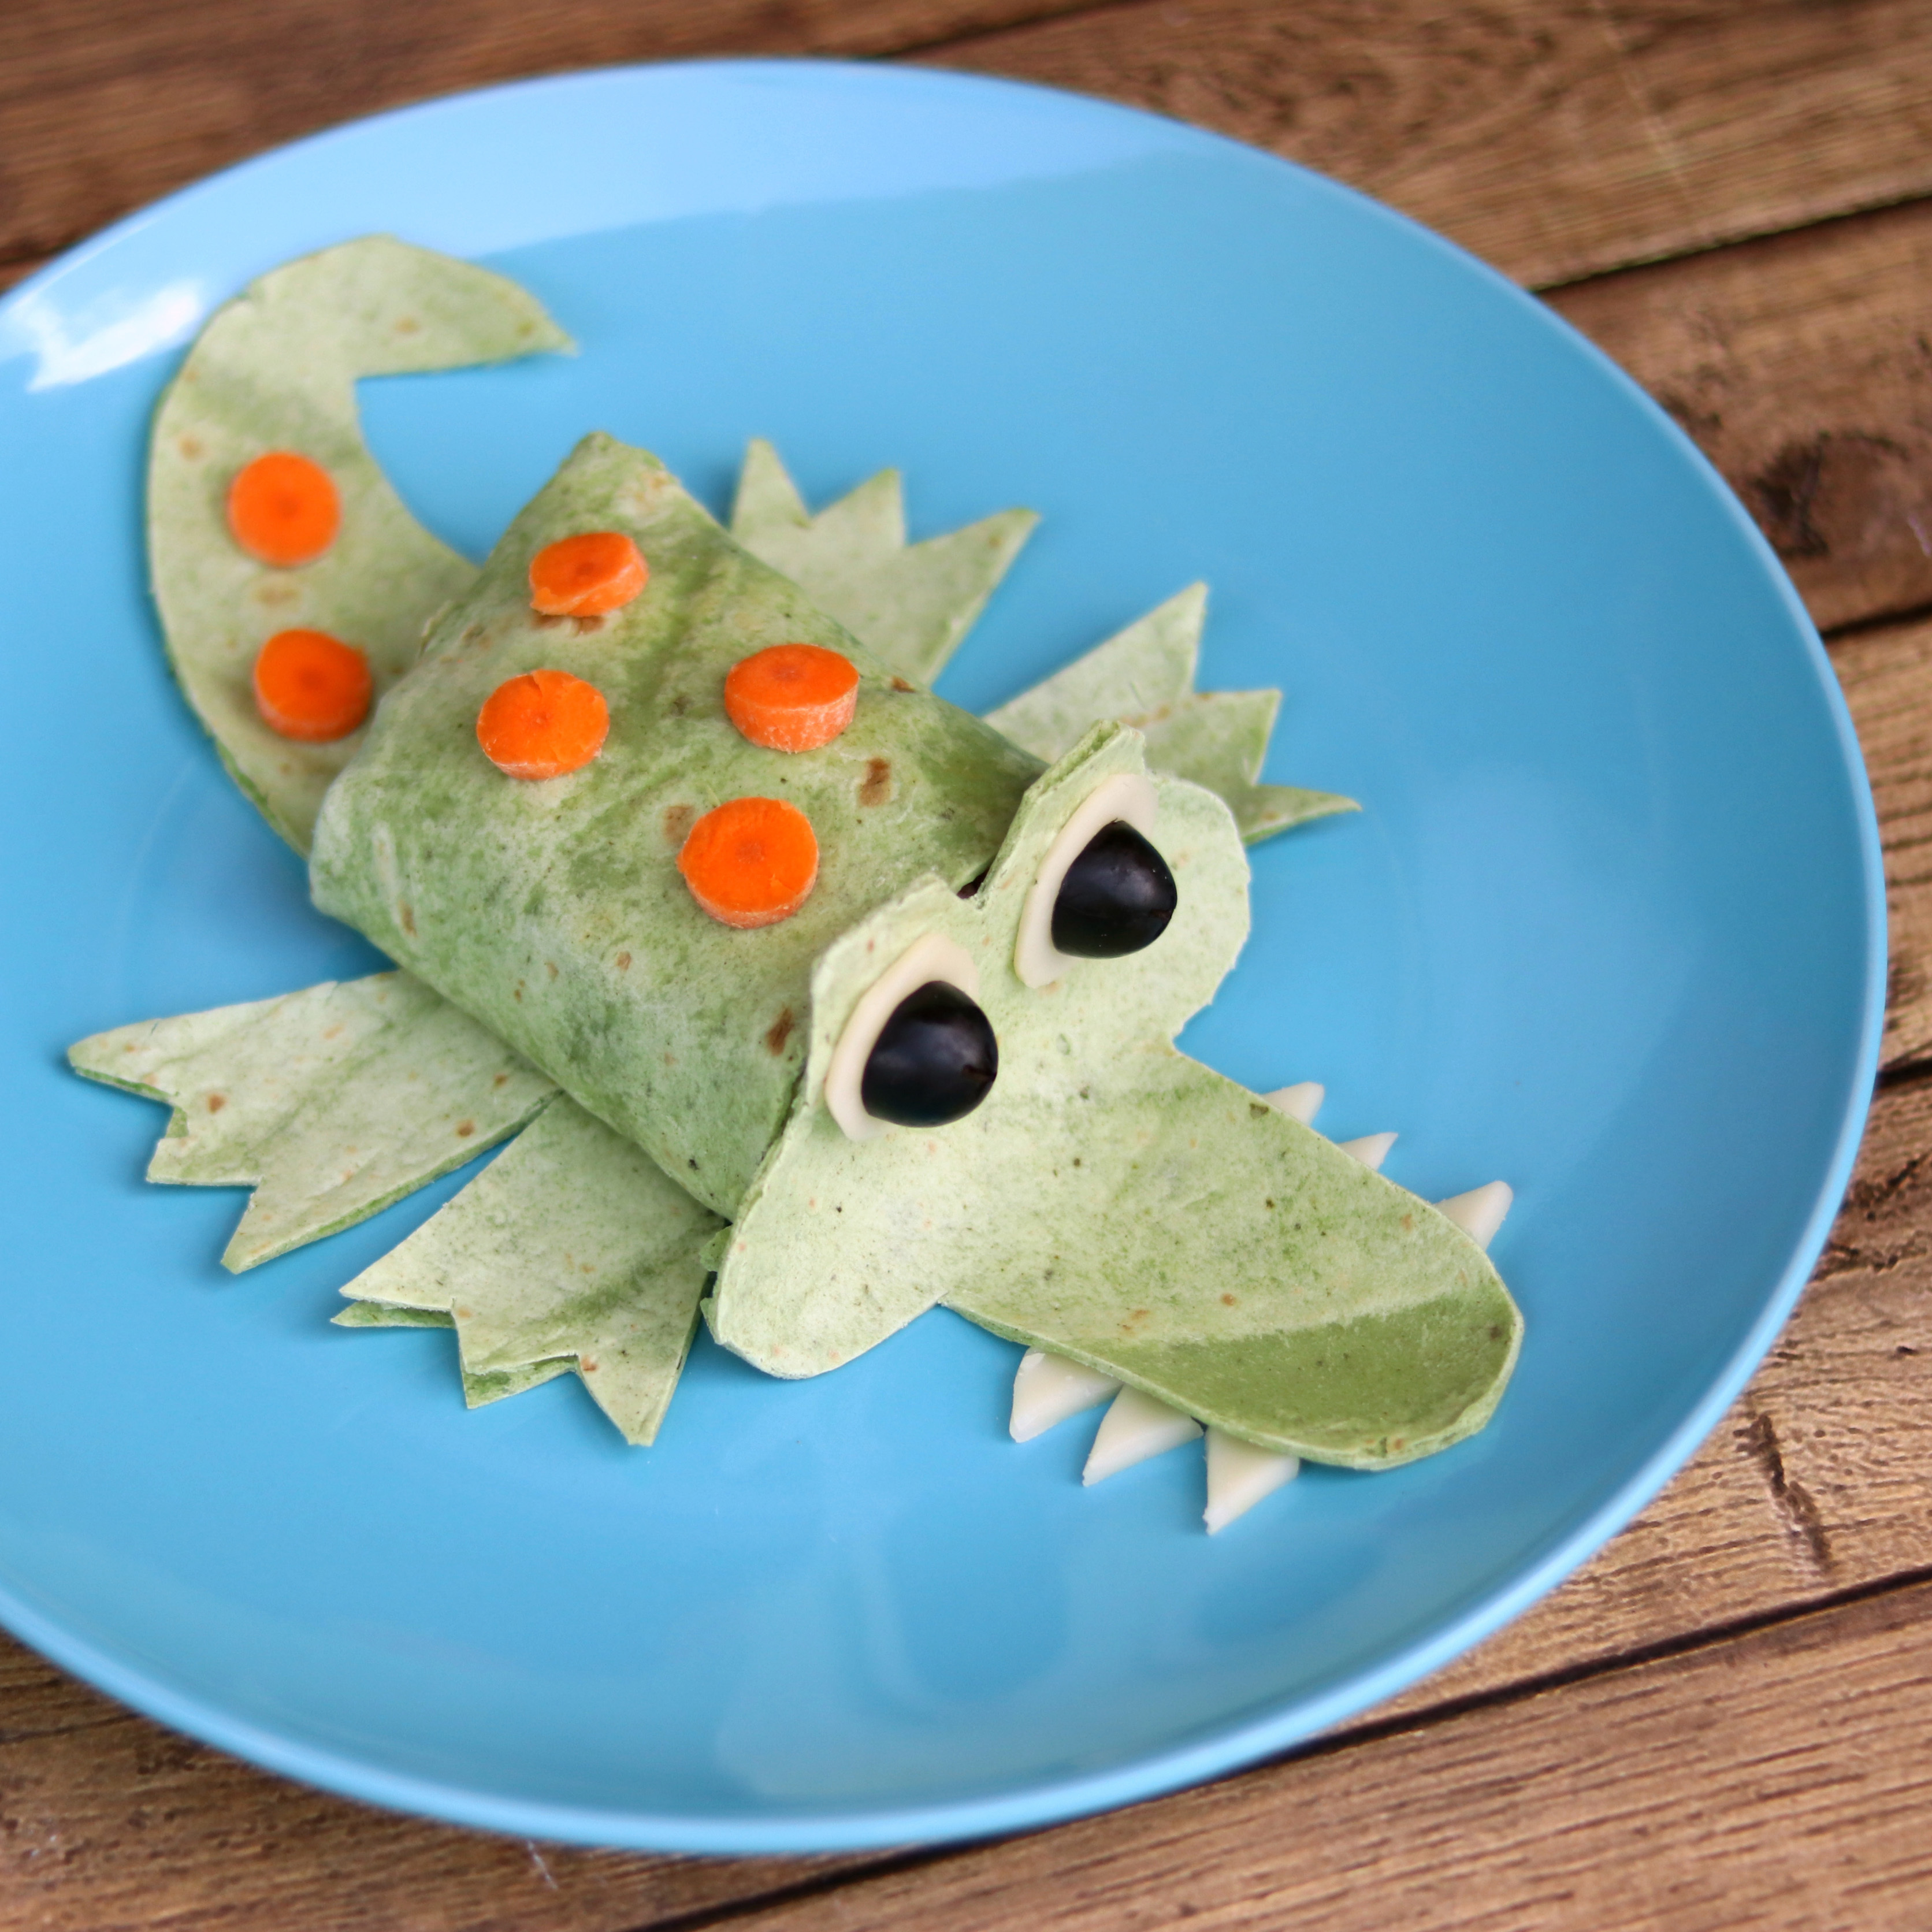 There's nothing wrong with having a little fun while you eat! Use a green spinach wrap to make this chicken and avocado wrap look like an alligator for a fun lunch to pack for your kids' school lunch. (Just remember to warn them about the toothpicks holding the alligator's eyes in place.) Source: EatingWell.com, July 2017